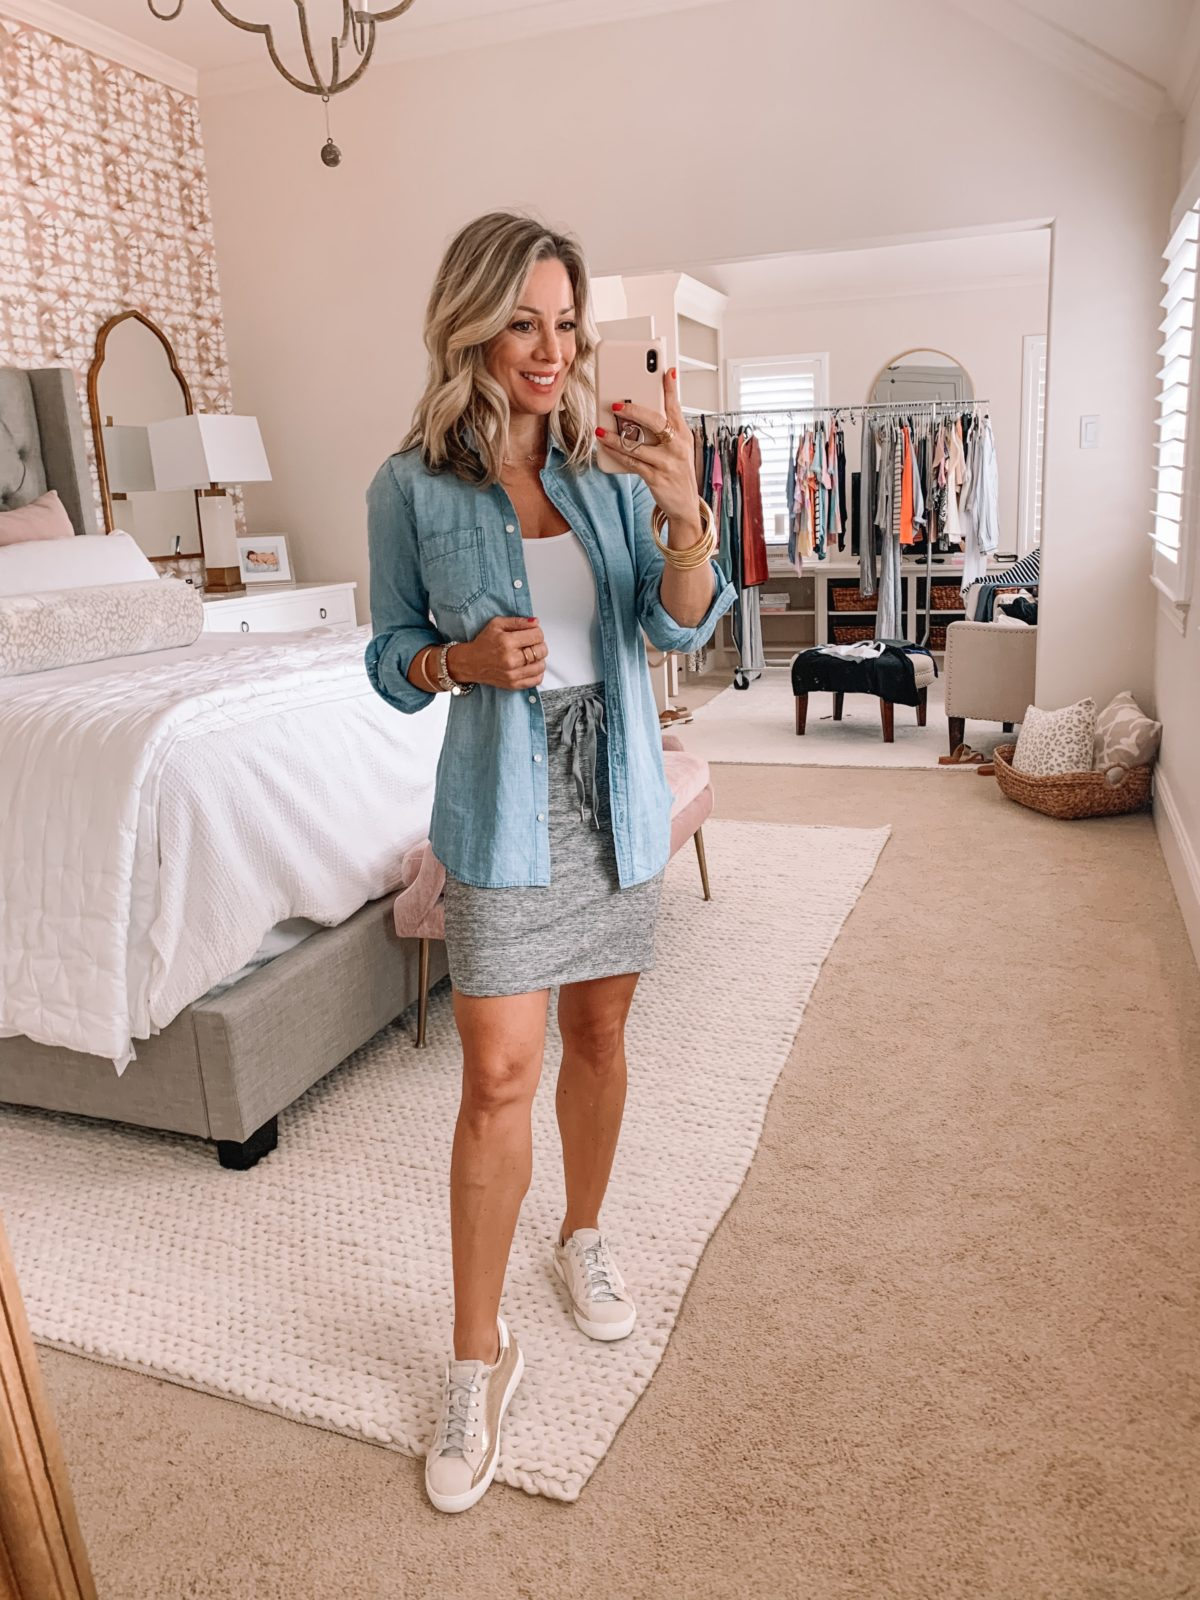 Amazon Fashion Finds, Bodysuit, Chambray Button Down, Mini Skirt Jersey Knit, Sneakers